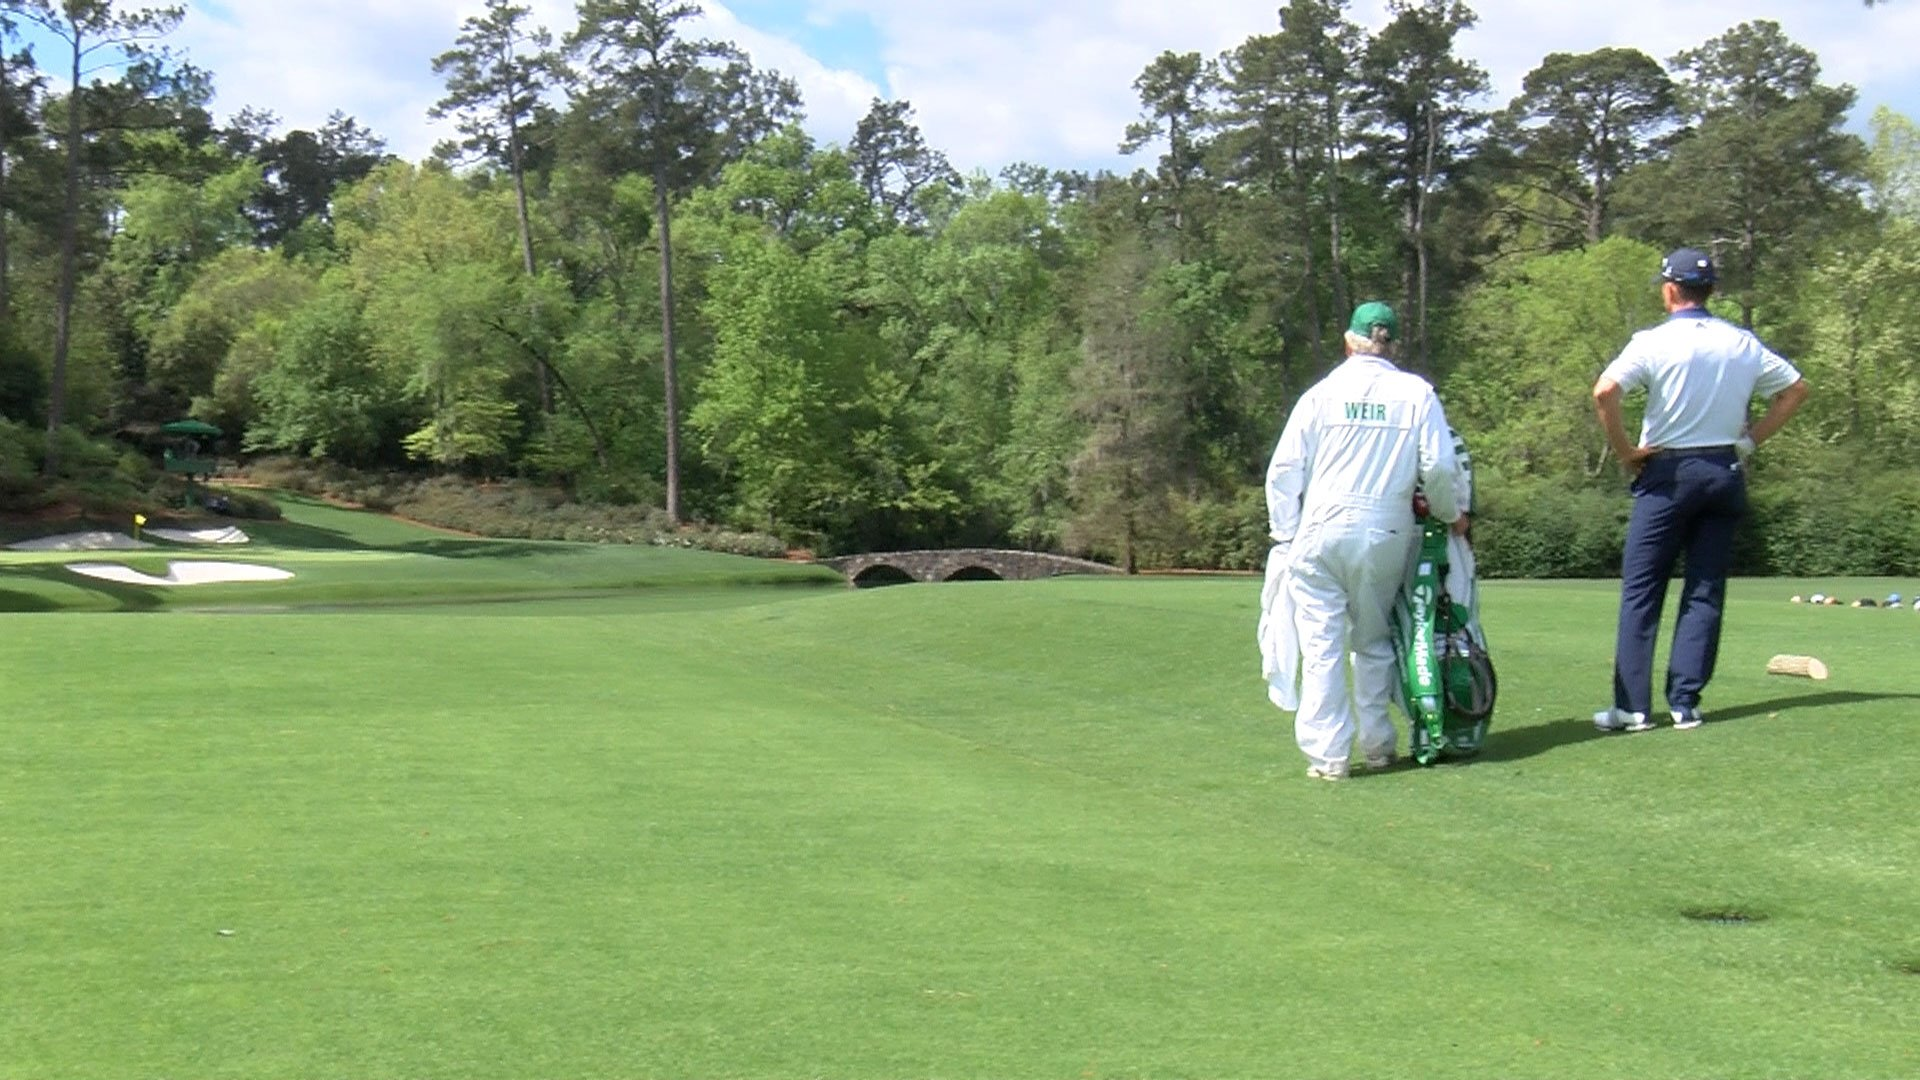 Mike Weir and his caddy stand at Amen Corner (WFXG)